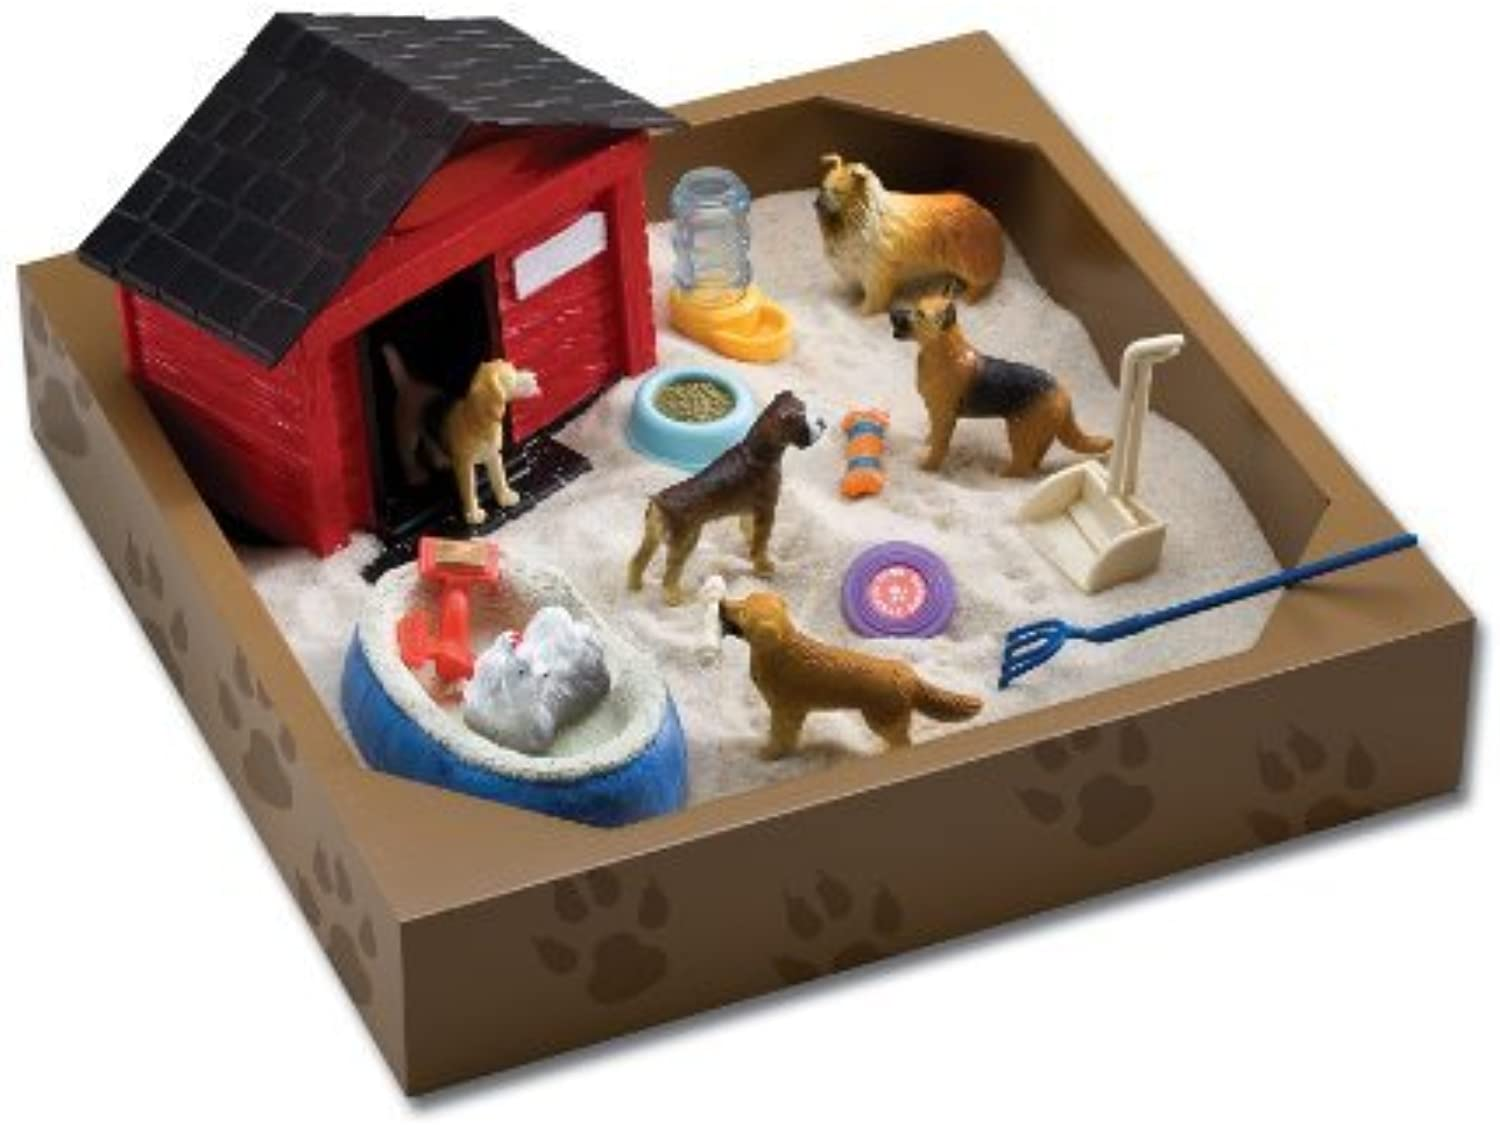 My Little Sandbox  Doggie Day Camp Play Set by Be Good Company